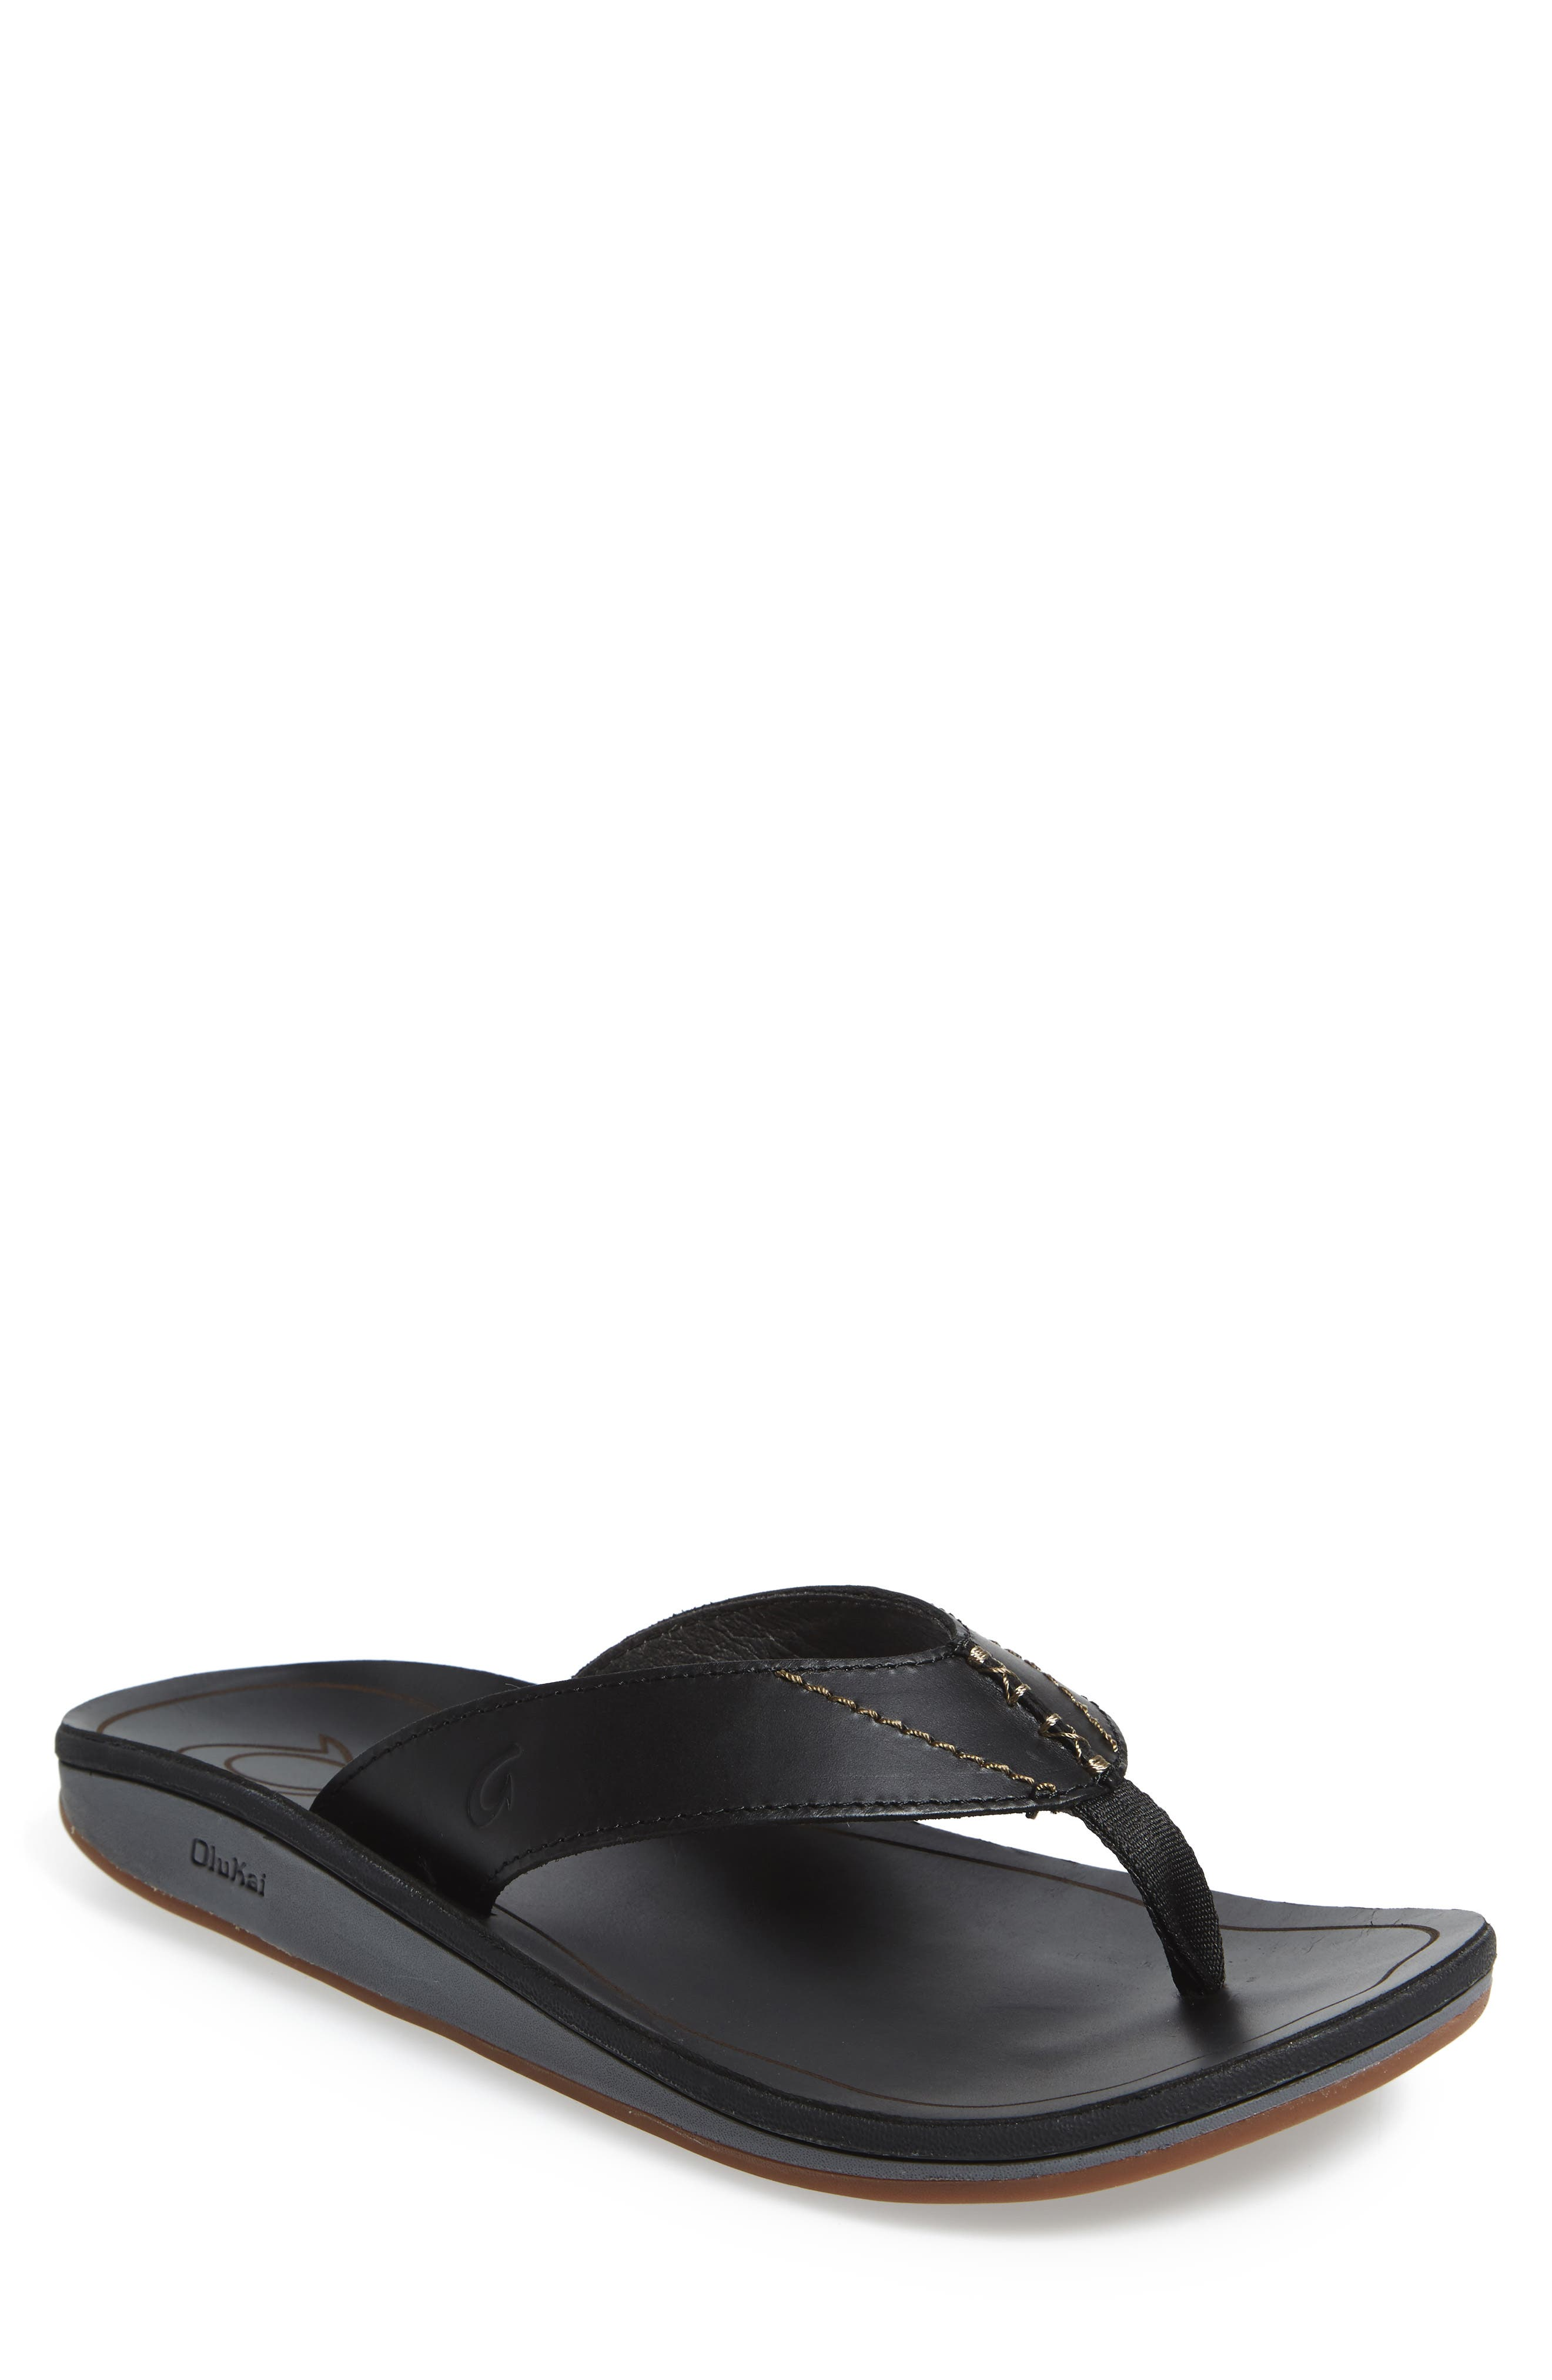 OLUKAI, Nohona Ili Flip Flop, Main thumbnail 1, color, BLACK/ BLACK LEATHER